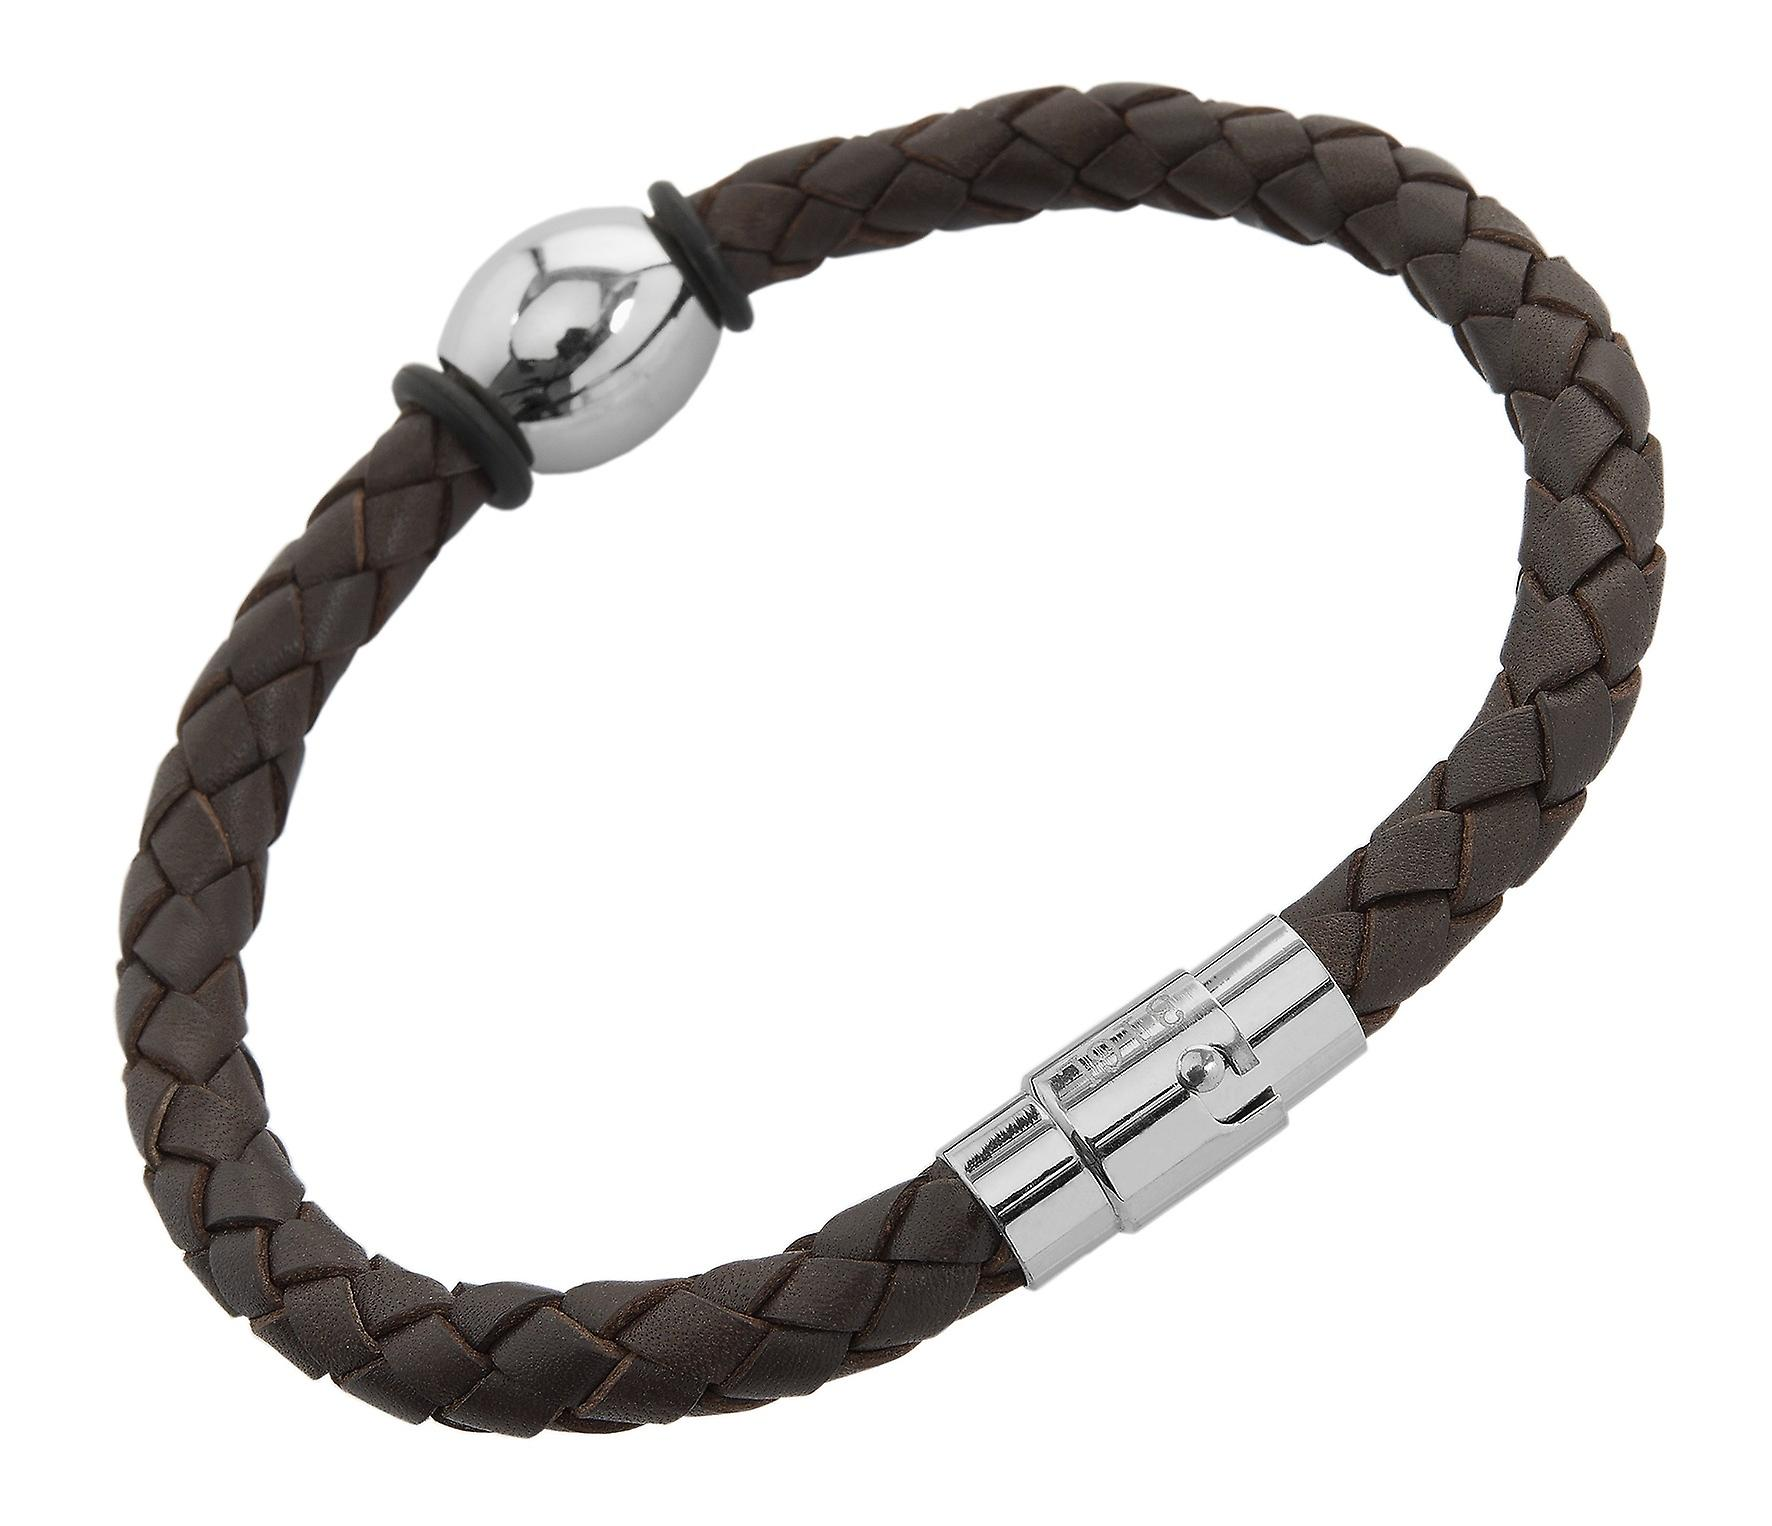 Burgmeister Leather bracelet, JBM4015-765